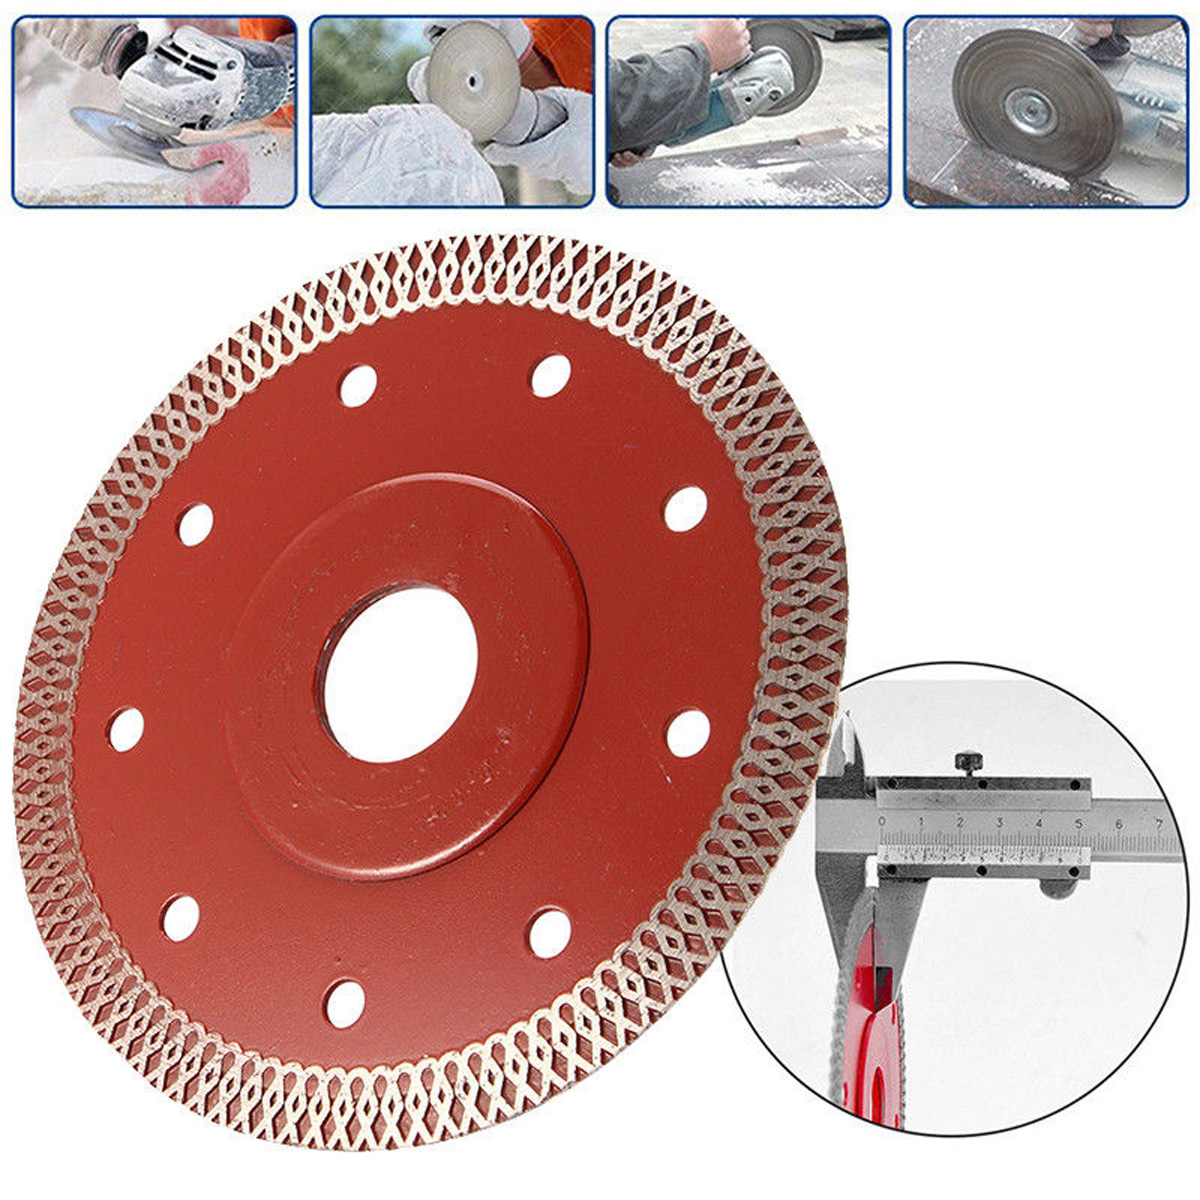 Details about 7.7 Inch Cuts Porcelain Tile Turbo Marble Cutting blade/Disc  Grinder wheel